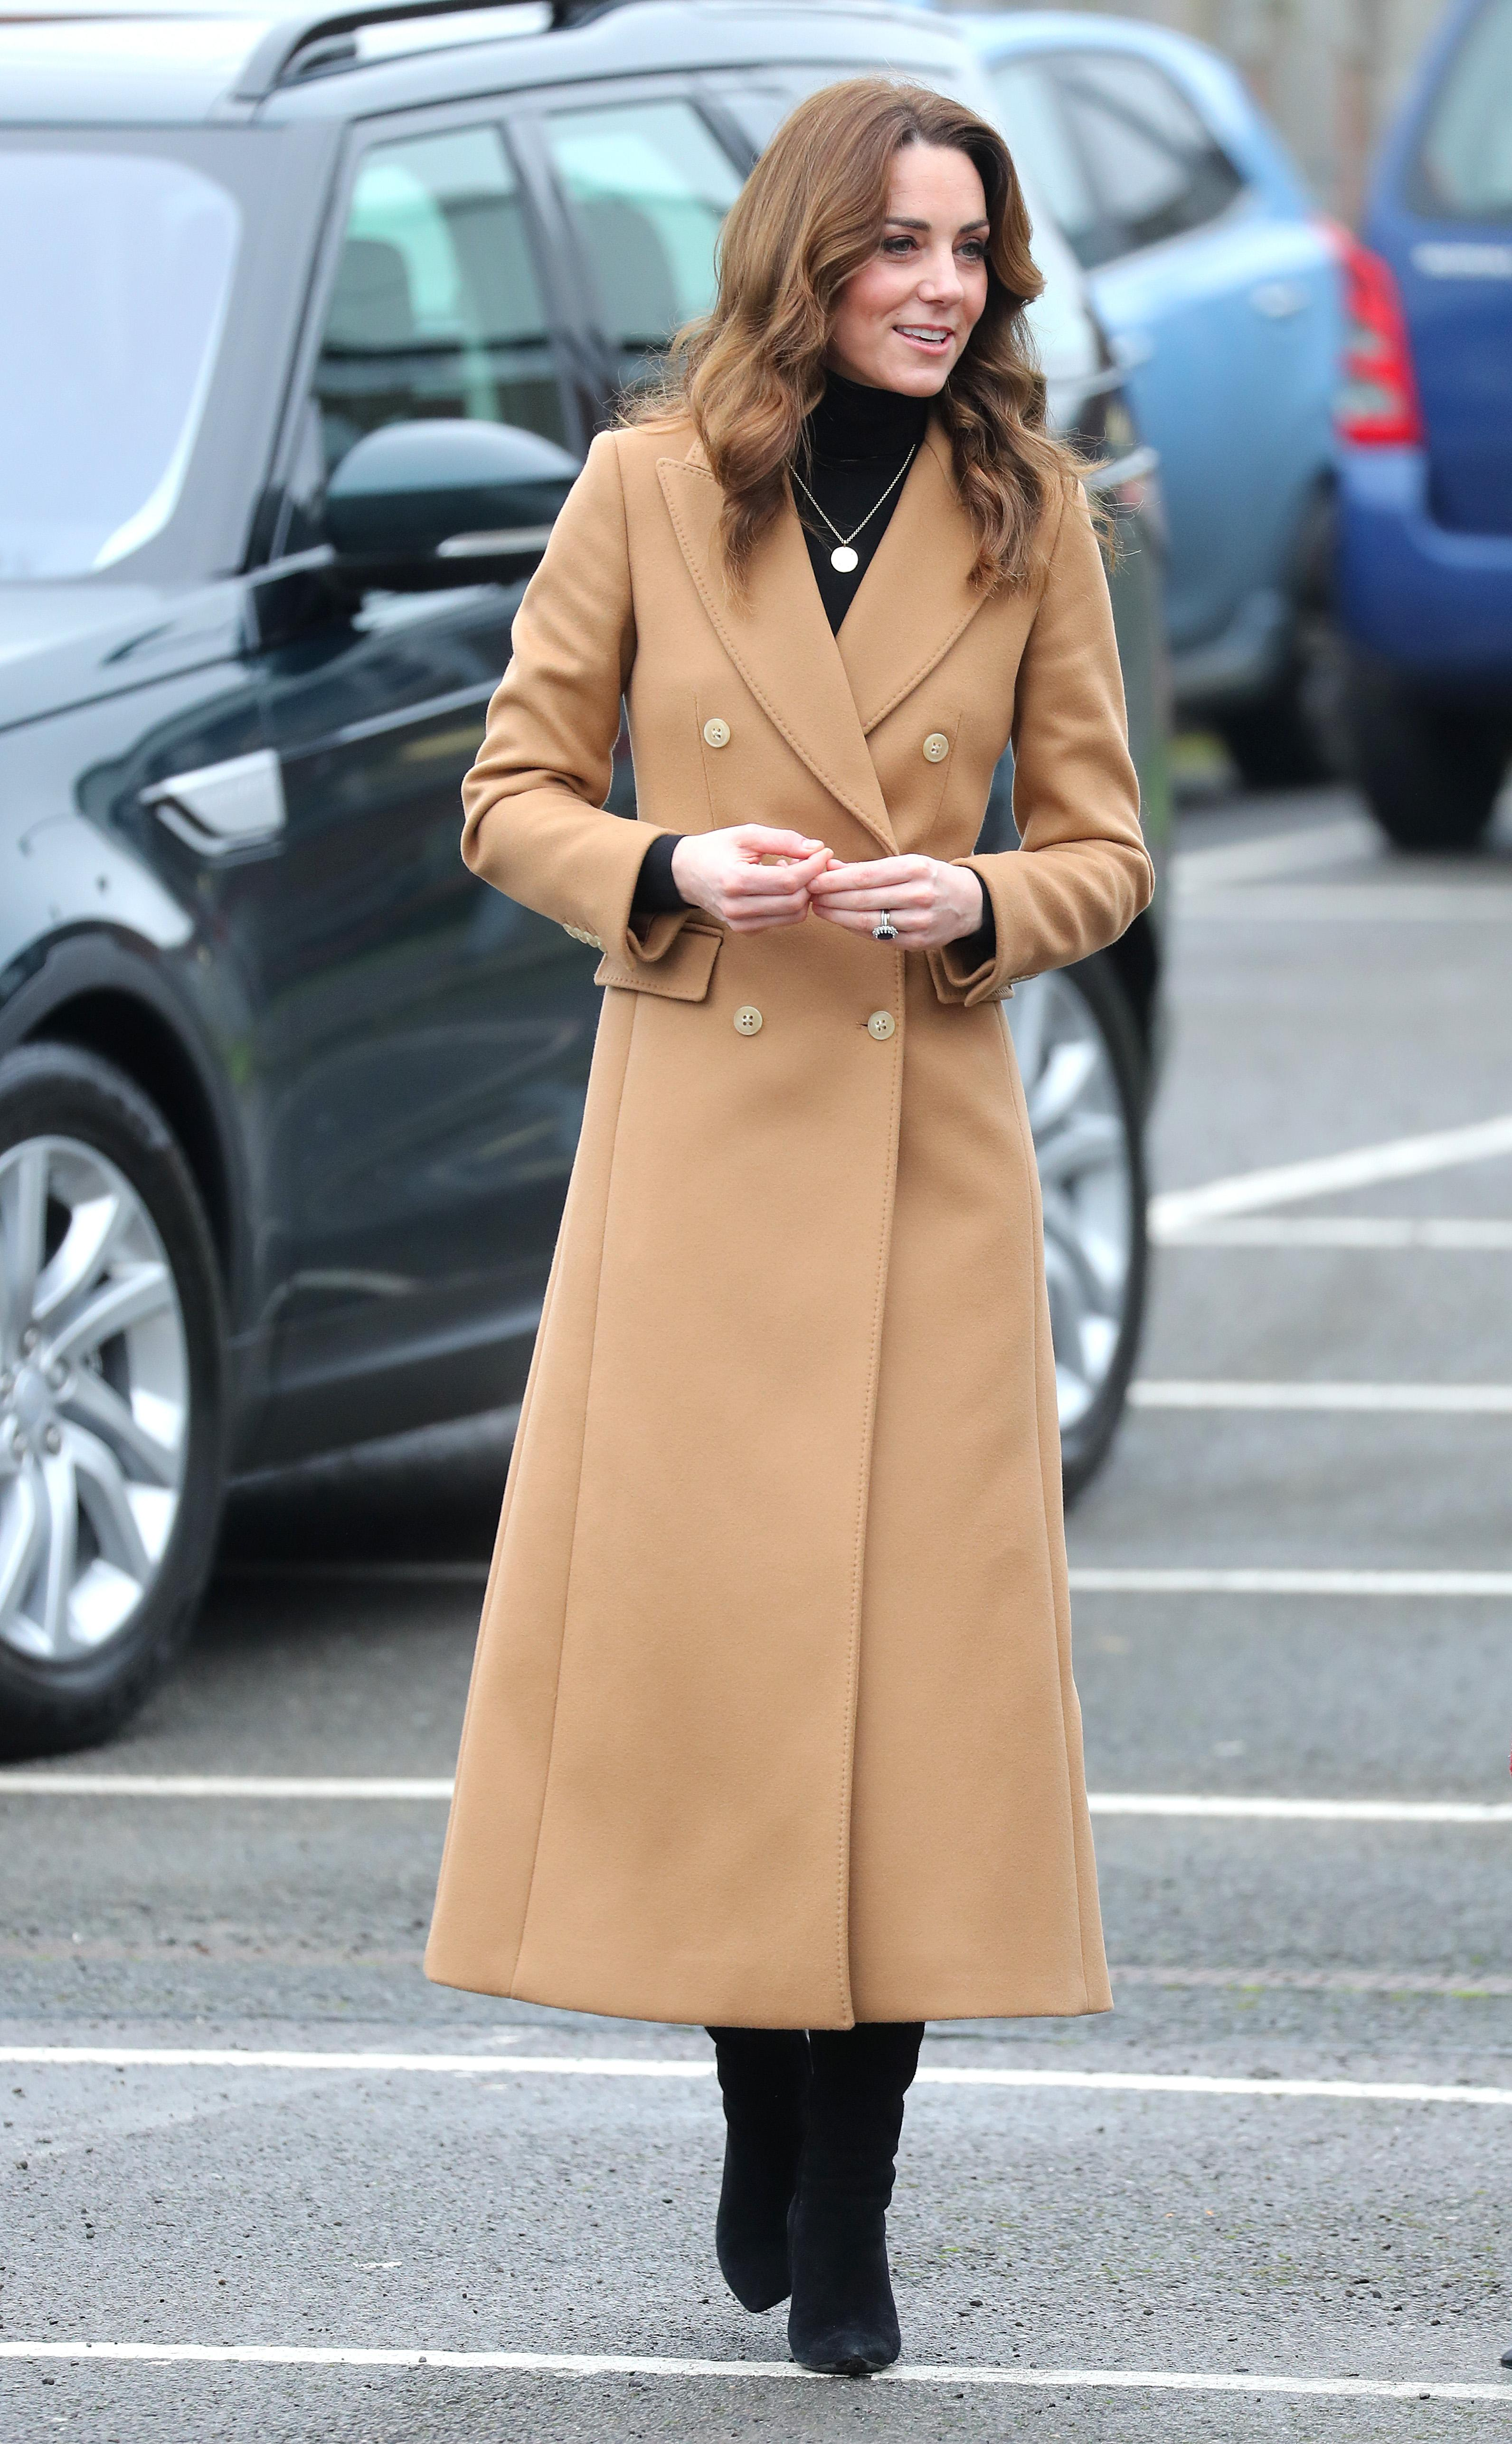 Duchess of Cambridge arrived wearing a camel coat by Massimo Dutti. [Photo: Getty]